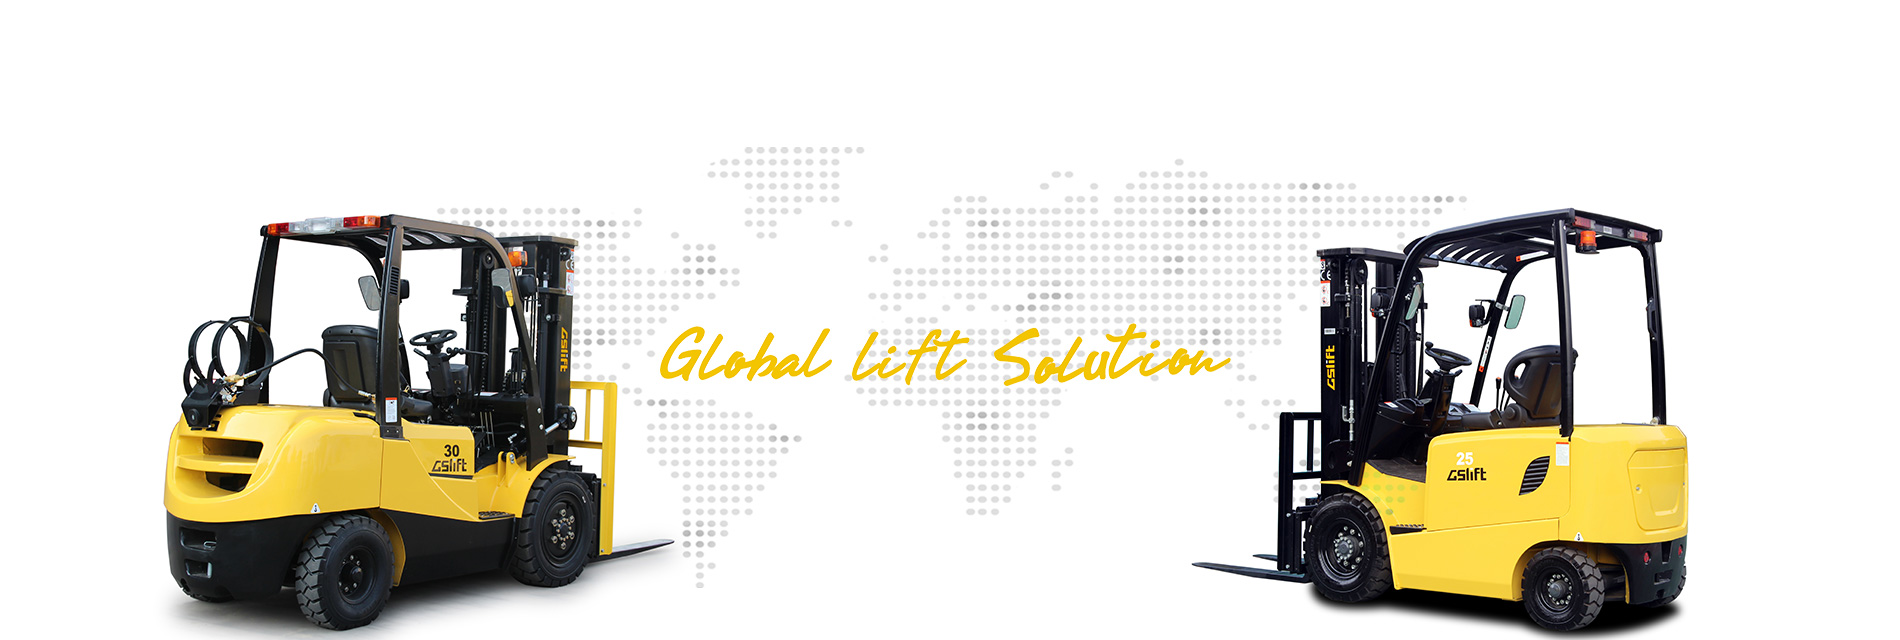 Global lift solution-www.gs-forklift.com